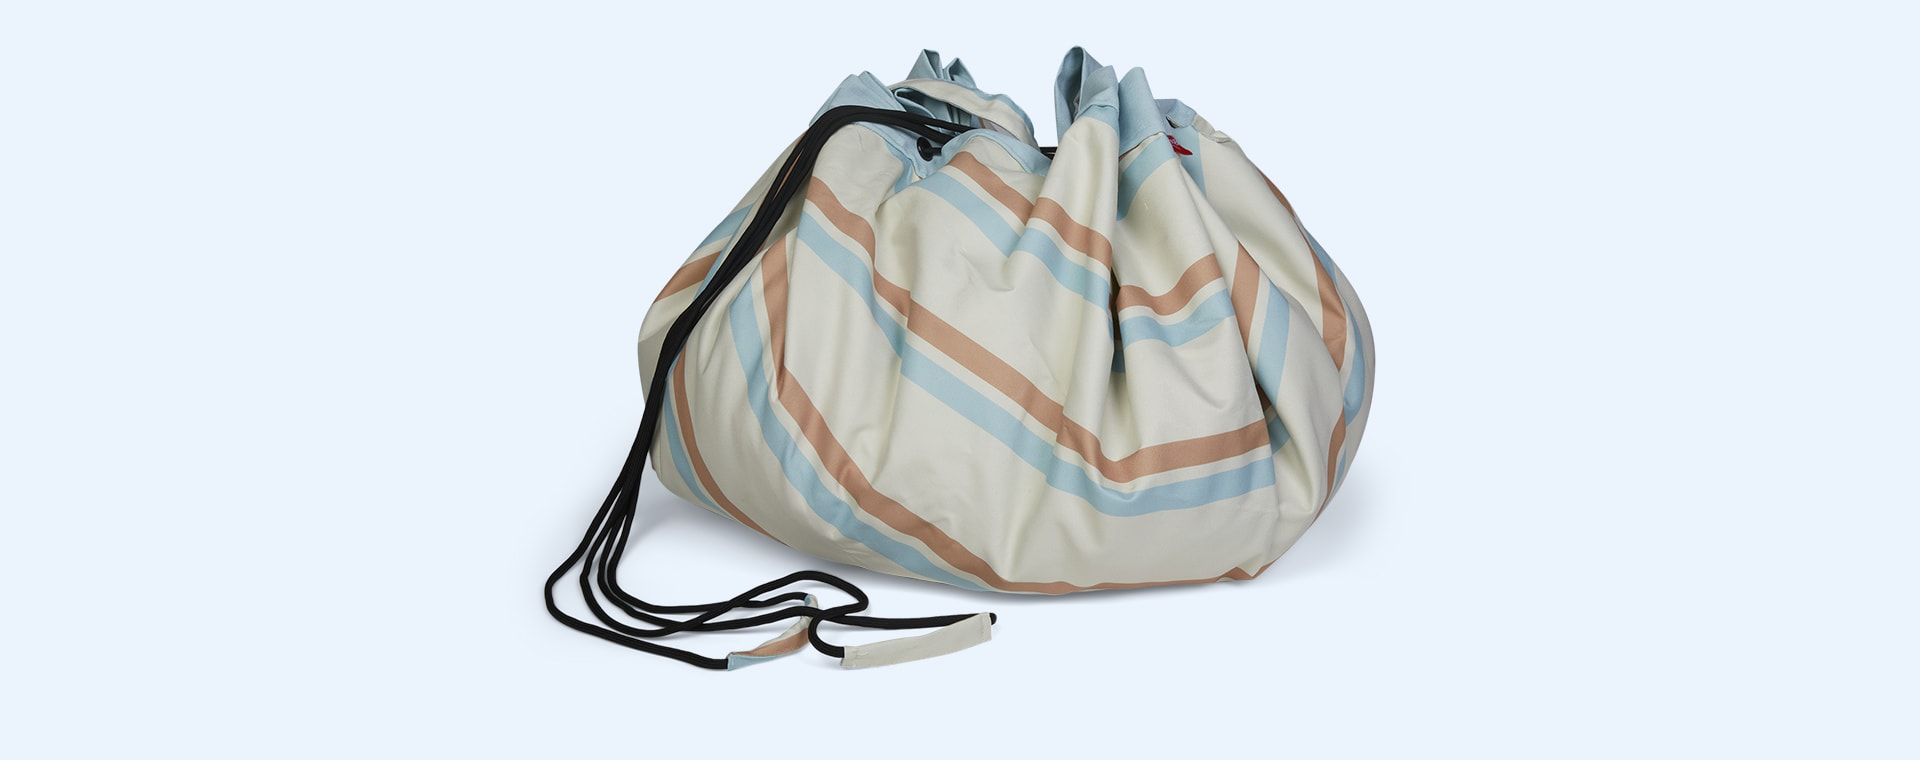 Outdoor Stripes Play & Go Outdoor Storage Bag